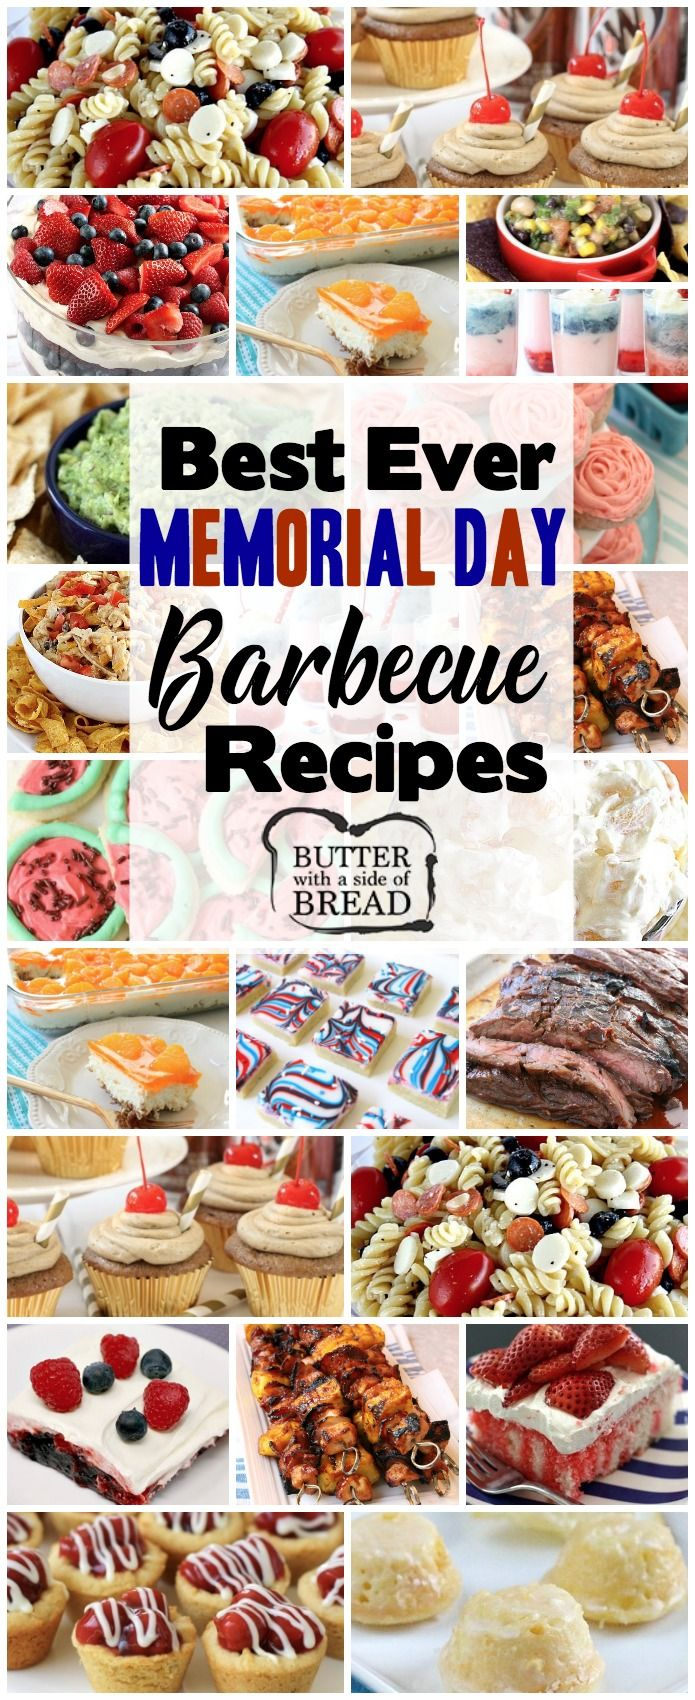 Best Memorial Day BBQ Recipes that will feed a crowd! Celebrate Memorial Day this year with fun, easy and patriotic recipes the whole family will enjoy. #food #recipe #MemorialDay #bbq #grill #dessert #patriotic